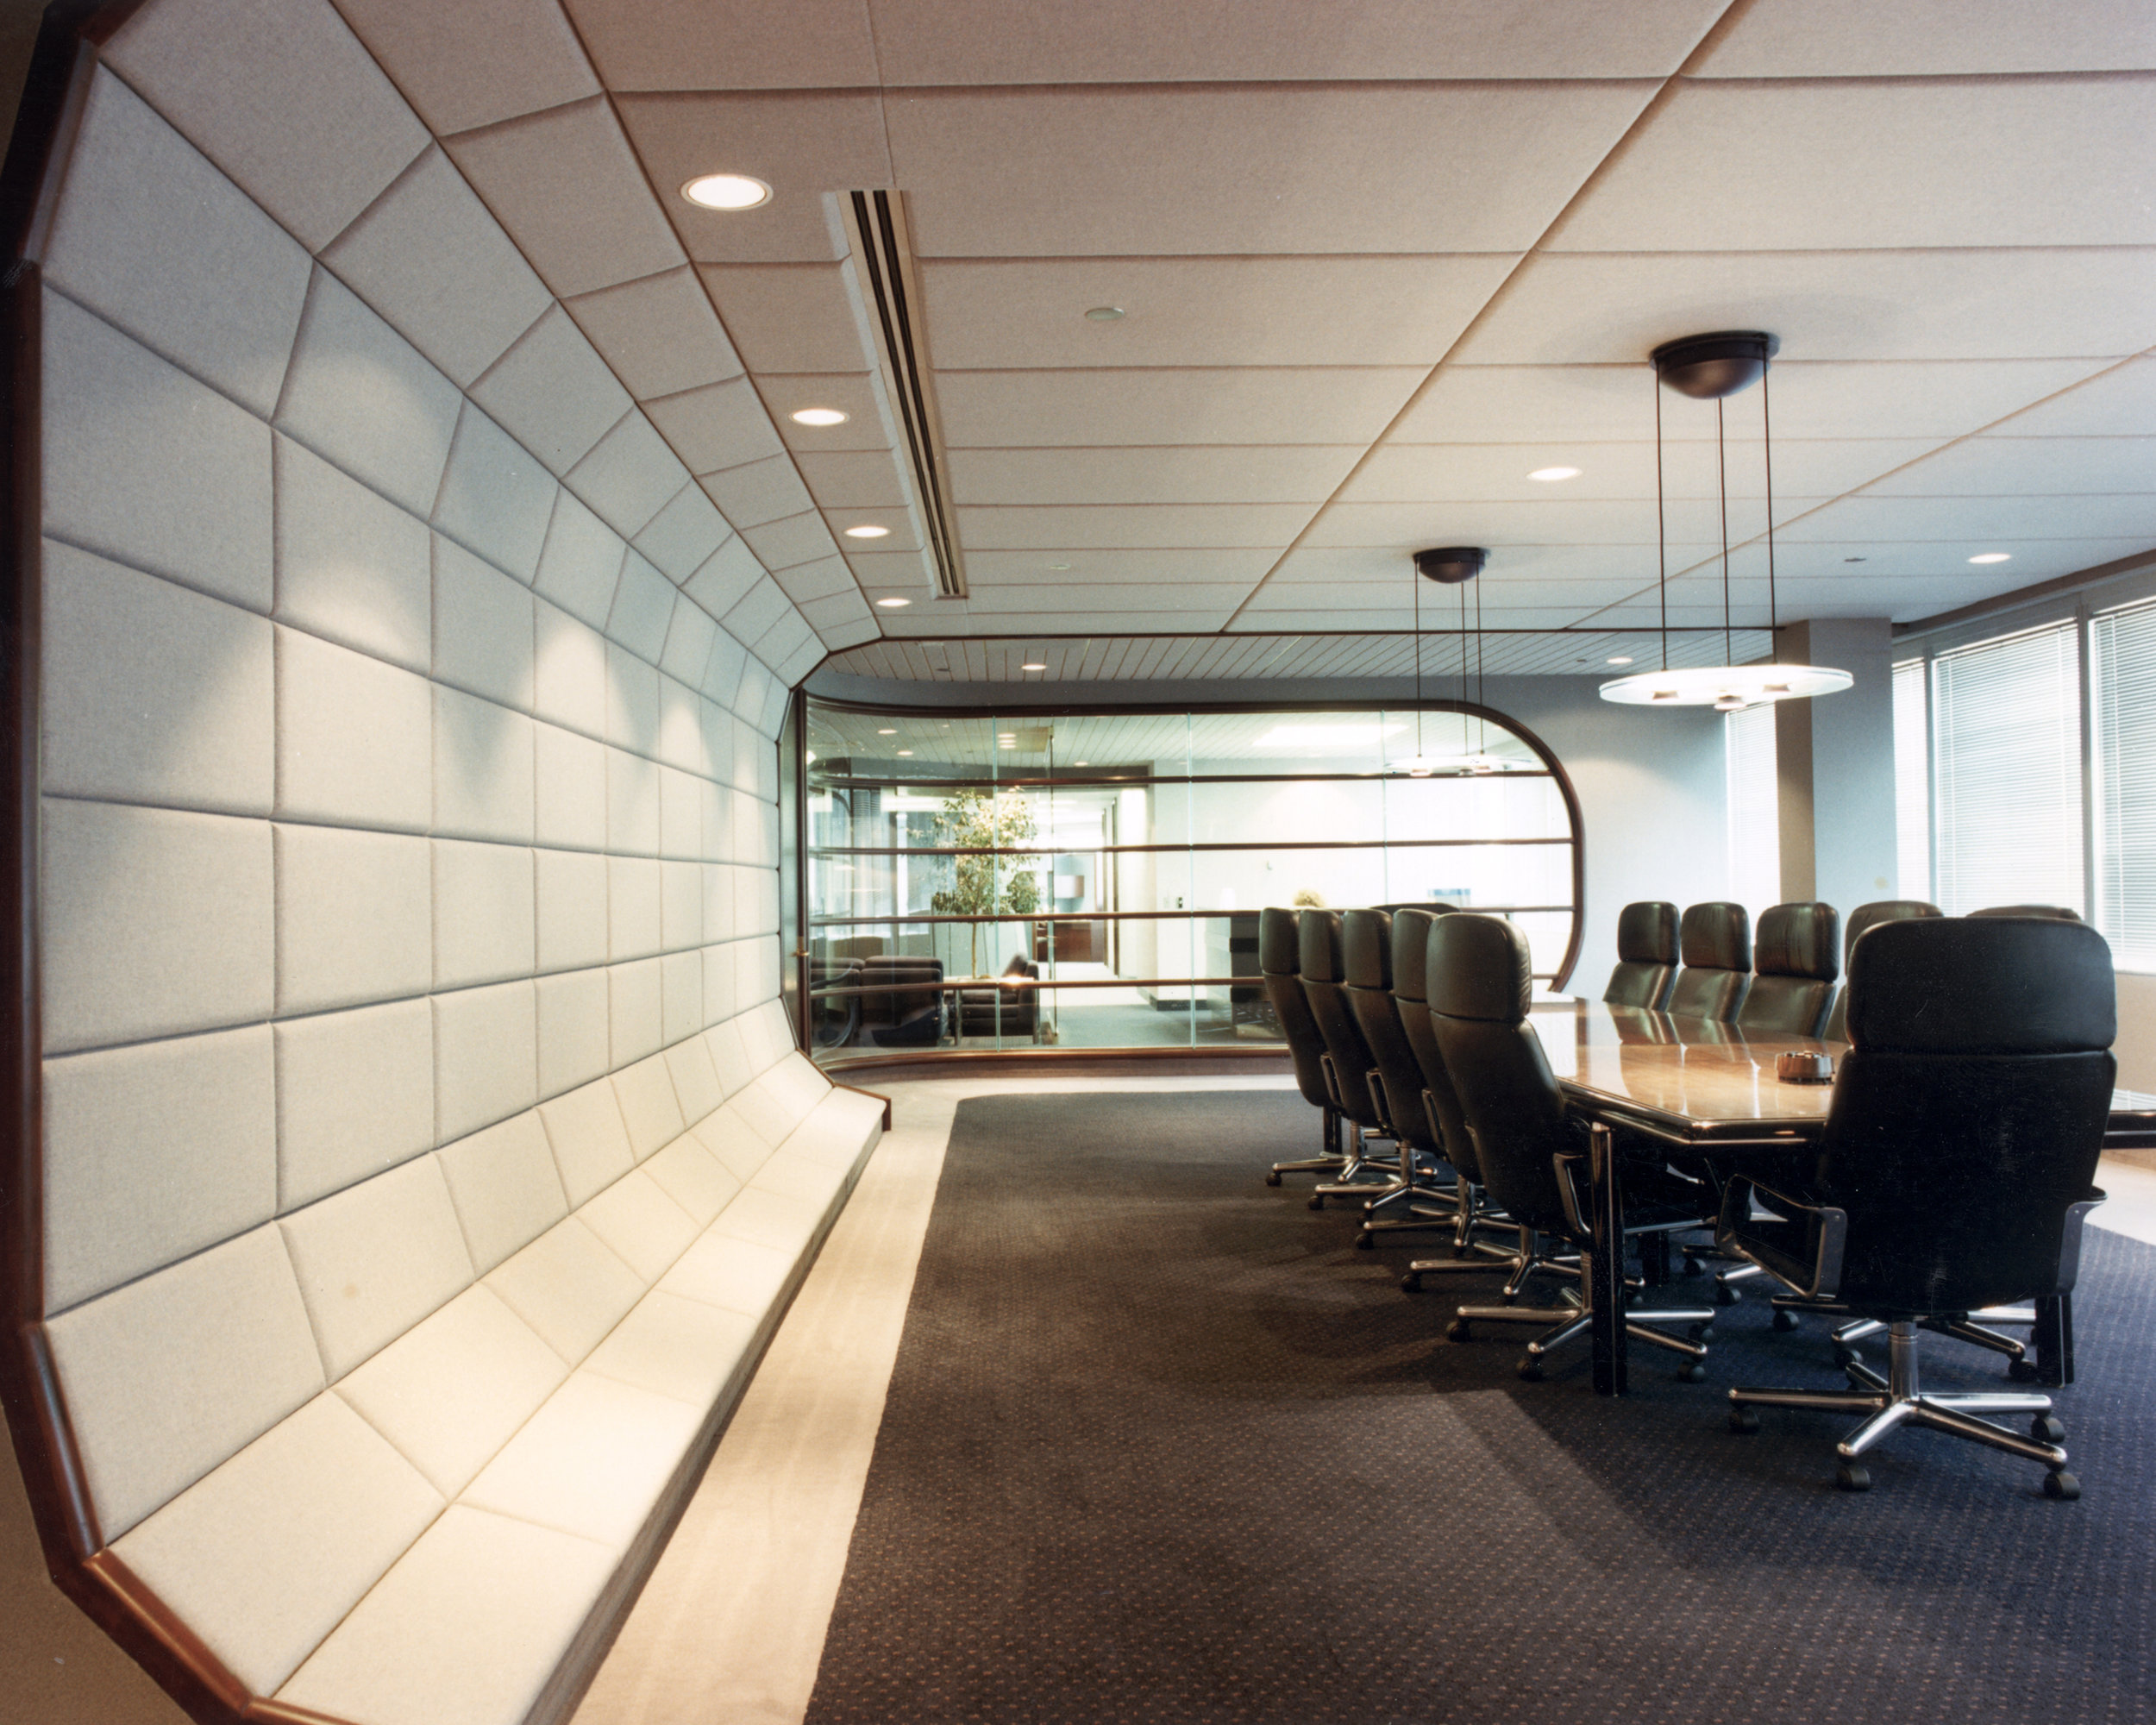 APS-3 wall and ceiling 1-Fancy Conf Room 11.jpg